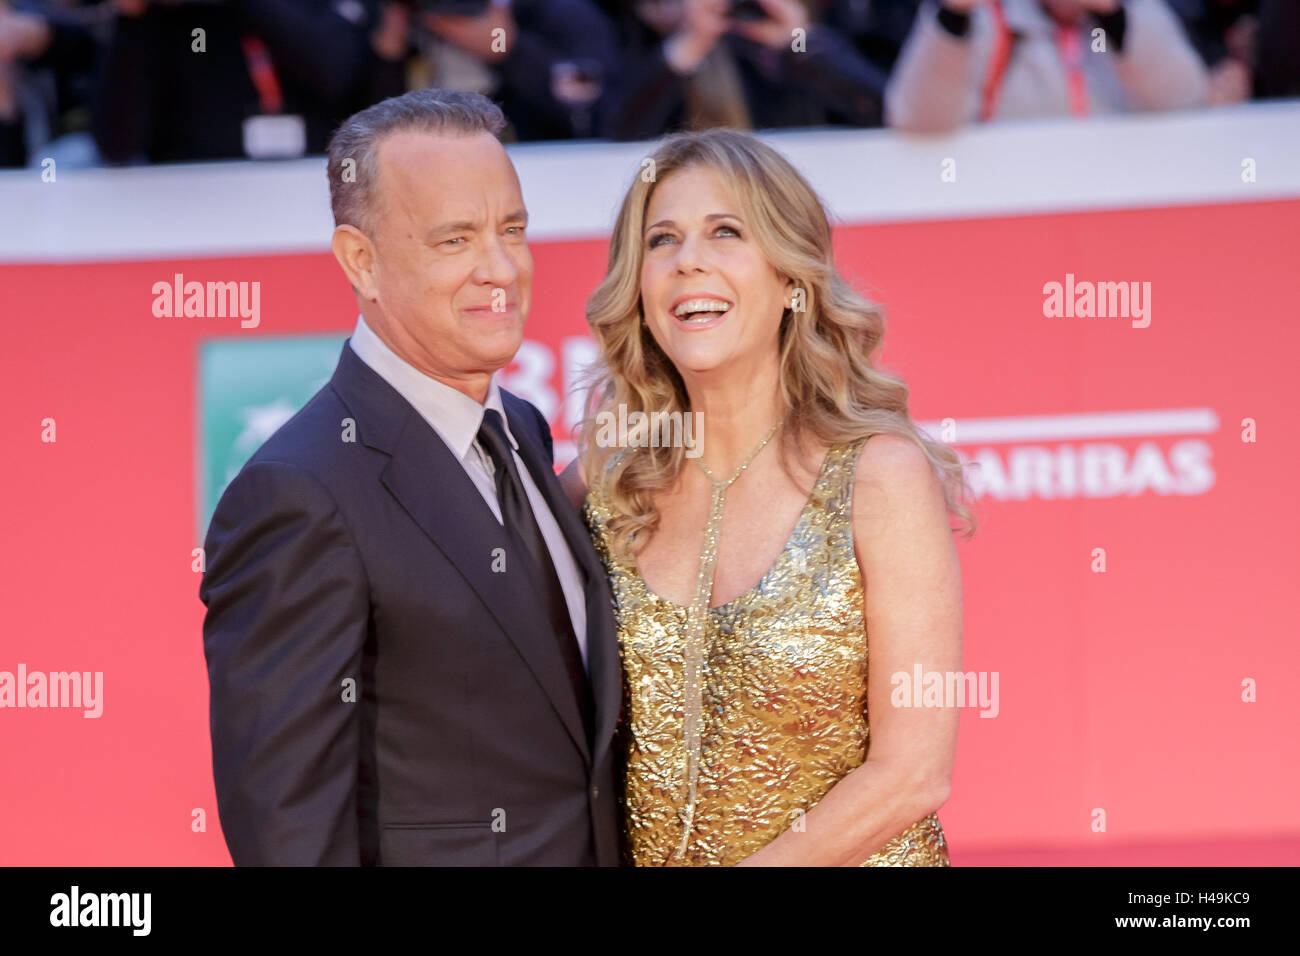 Rome, Italy. 13th Oct, 2016. Host of the red carpet to the auditorium music park with his wife Rita Wilson. The 11th Rome Film Festival will be held from 13th to 23rd October 2016 at the Auditorium Parco della Musica and in other venues throughout the city. The event hosts a large and challenging programmed of screenings, master classes, tributes, retrospectives, panels, and special events. Credit:  Mauro Fagiani/Pacific Press/Alamy Live News Stock Photo